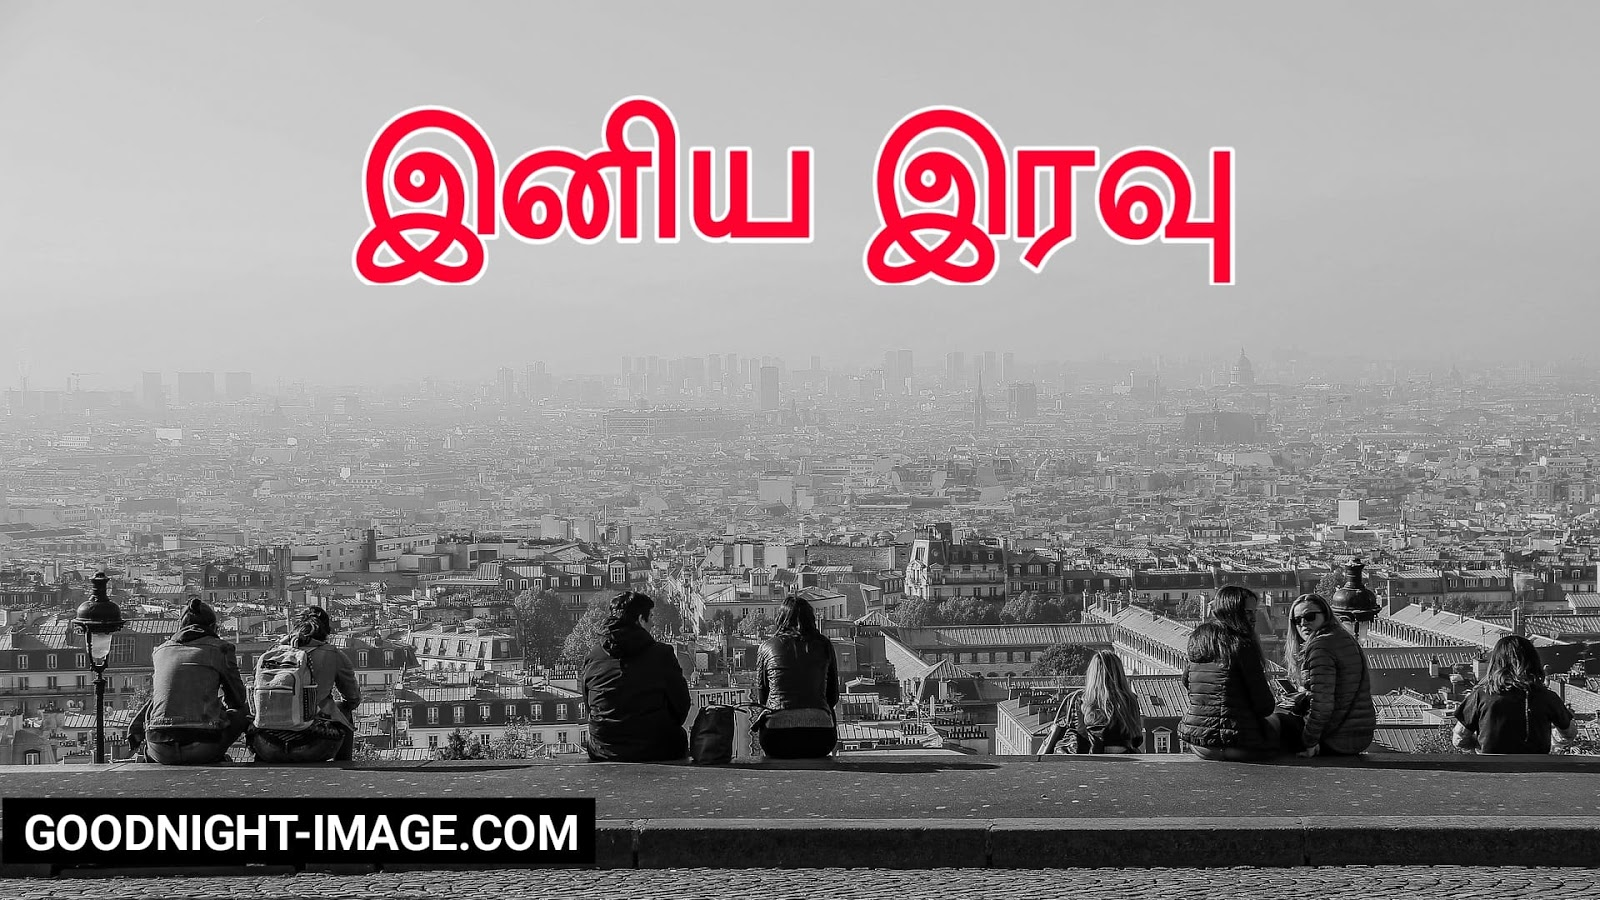 Good Night Image Tamil Best இனிய இரவு Pictures Photo Wishes Good Night Image